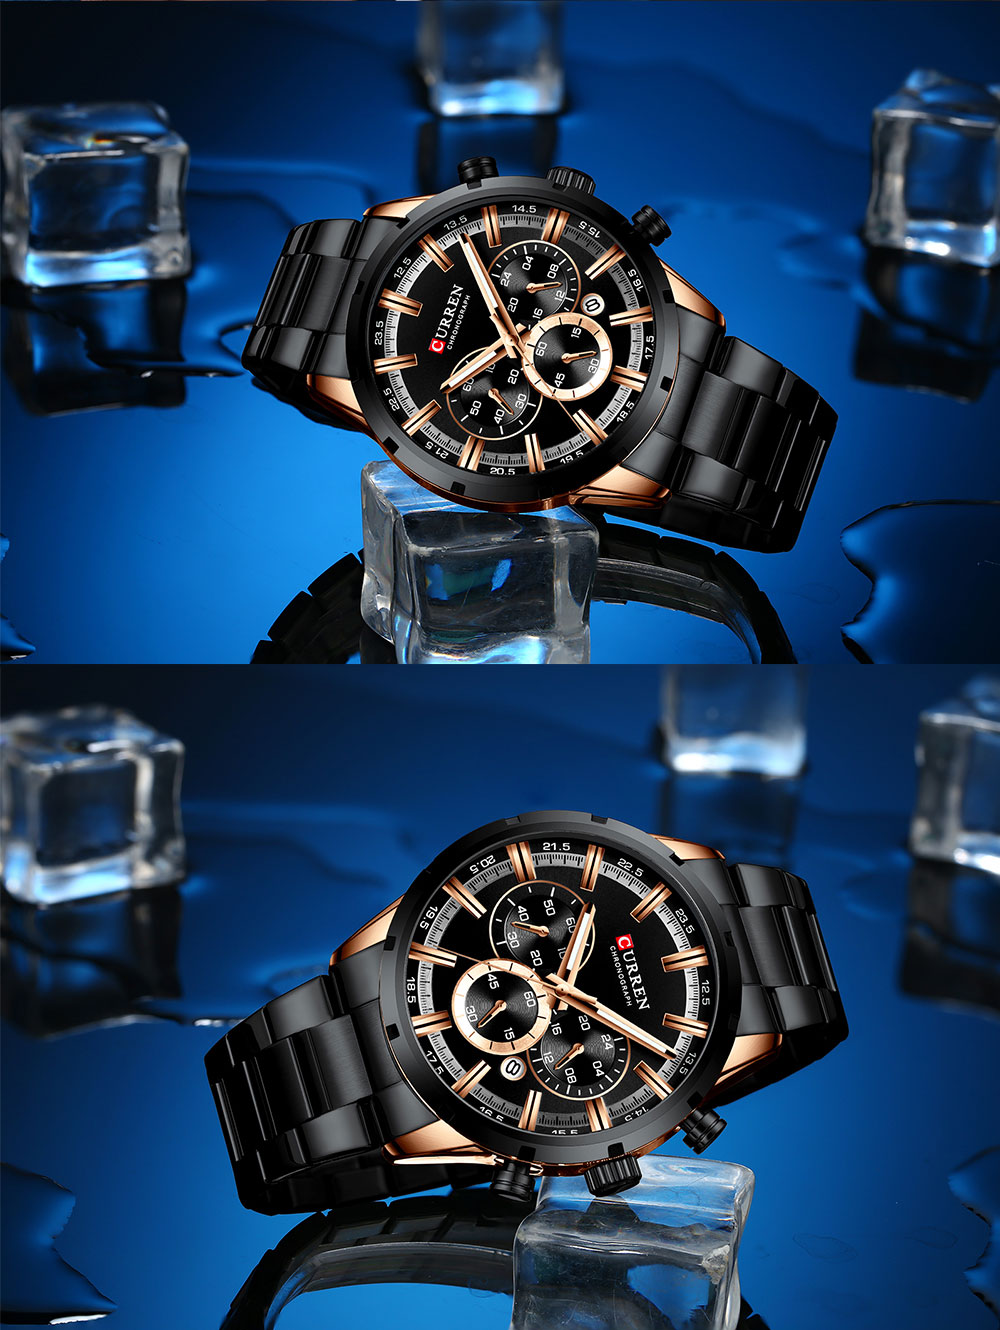 H5d3644abd9f94a74b8a97d827f15cb9bI CURREN Top Brand Military Quartz Watches Silver Clock Mens Quartz Stainless Steel Chronograph Watch for Men Casual Sporty Watch